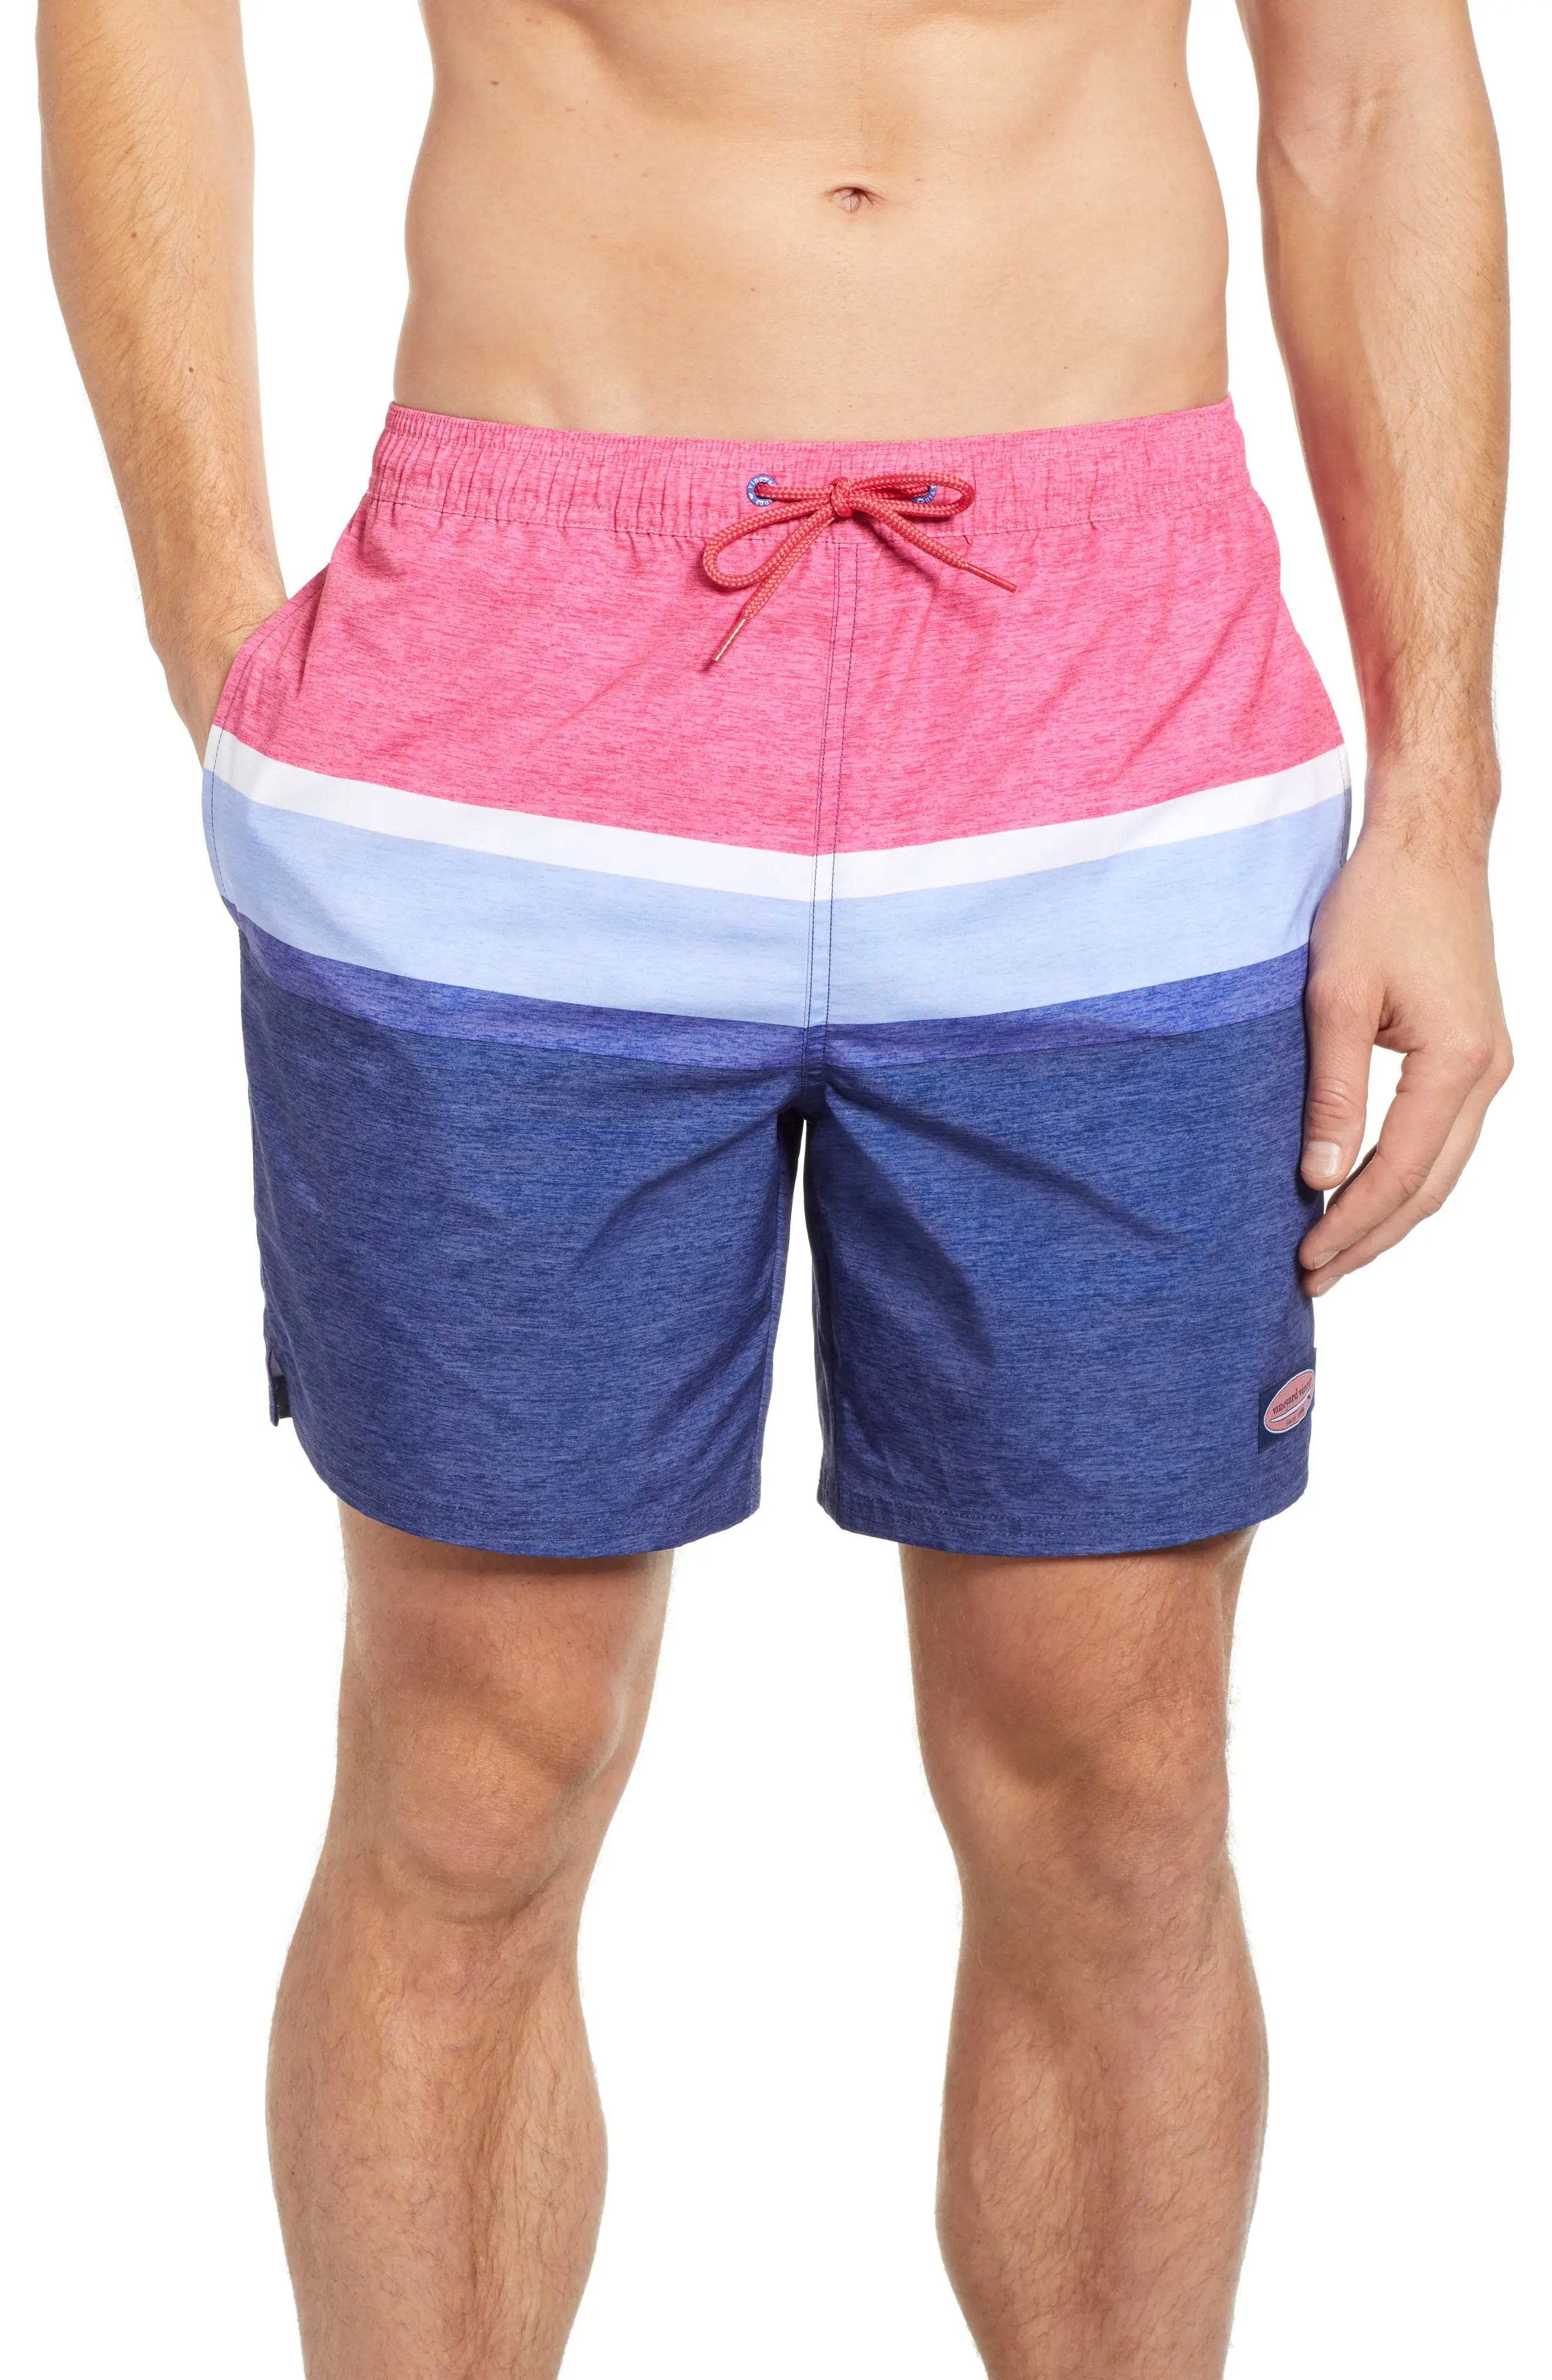 Vineyard vines deck stripe chappy swim trunks also big and tall clothing men   suits more nordstrom rh shoprdstrom